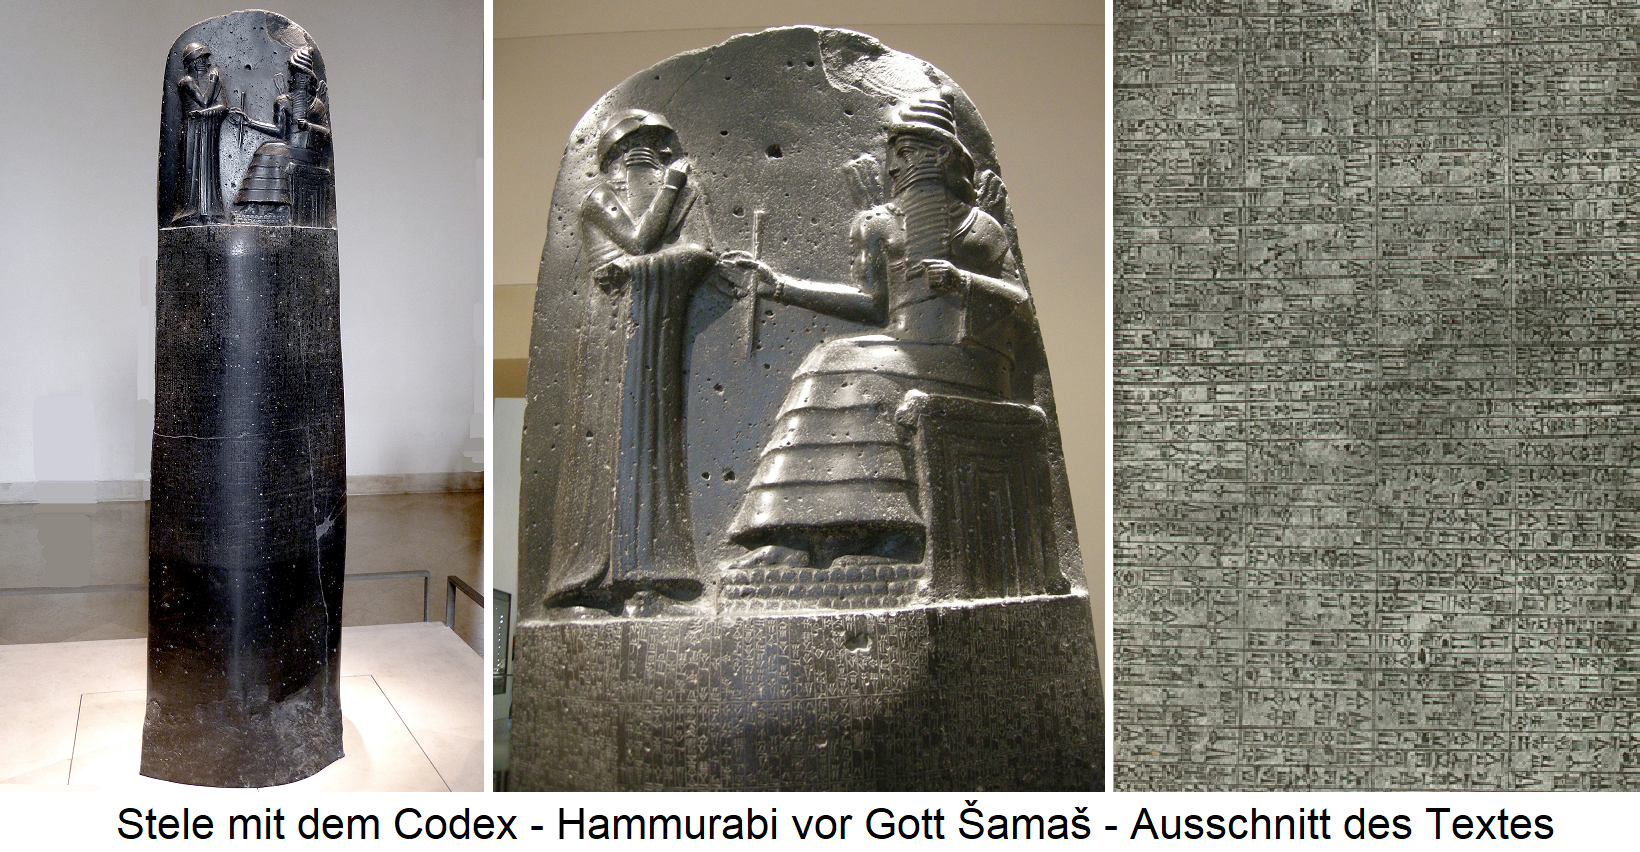 Stele with the Codex - Hammurabi in front of God Šamaš - Detail of the text